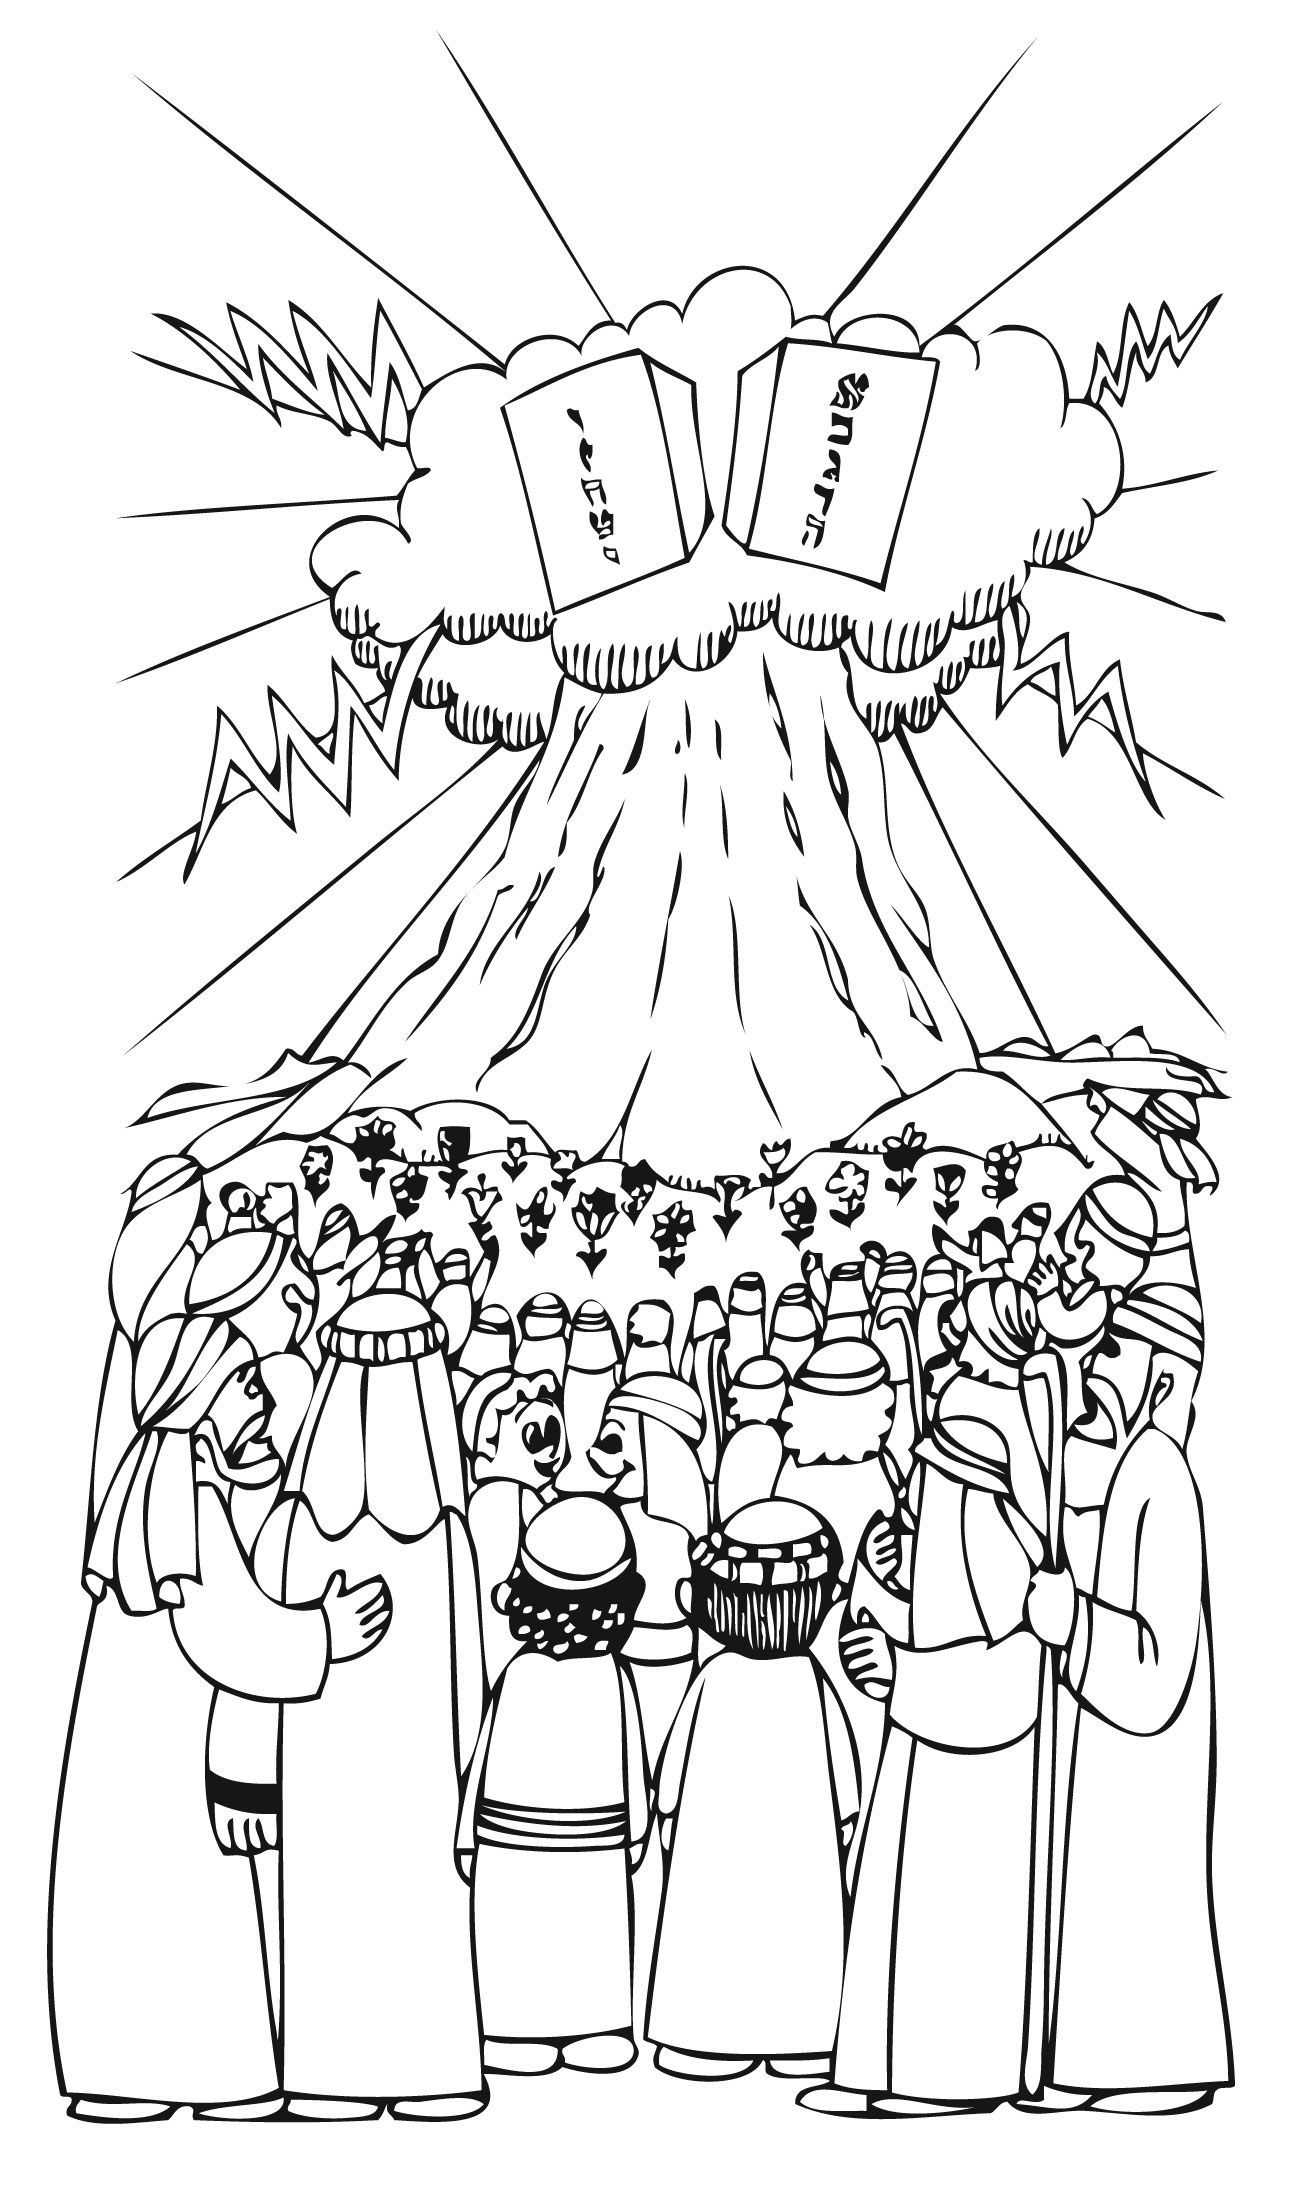 Coloring Sheet The Jews Standing Around Mount Sinai As